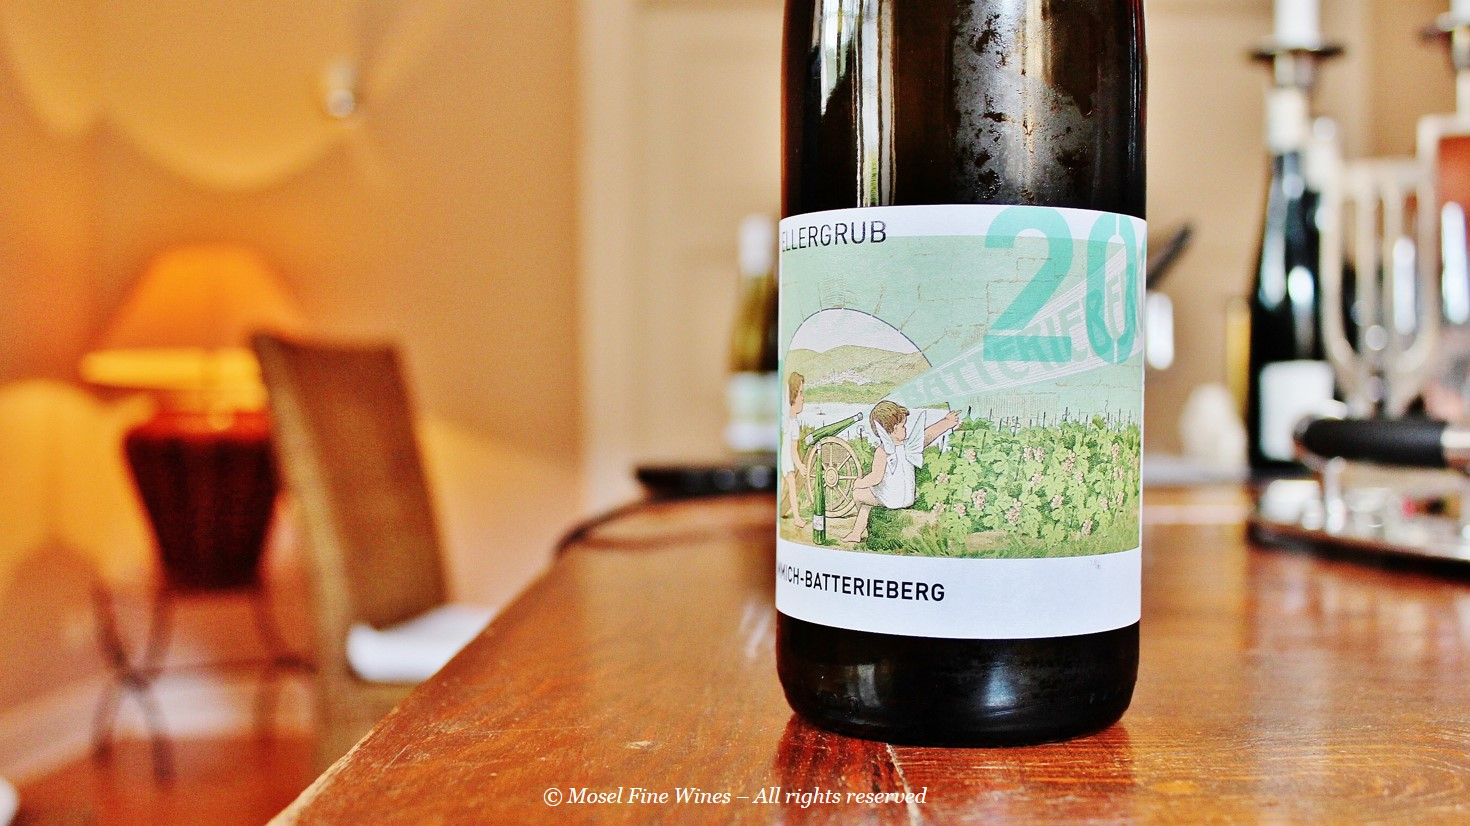 Weingut Immich-Batterieberg | Enkircher Ellergrub Riesling 2014 | Wine Label